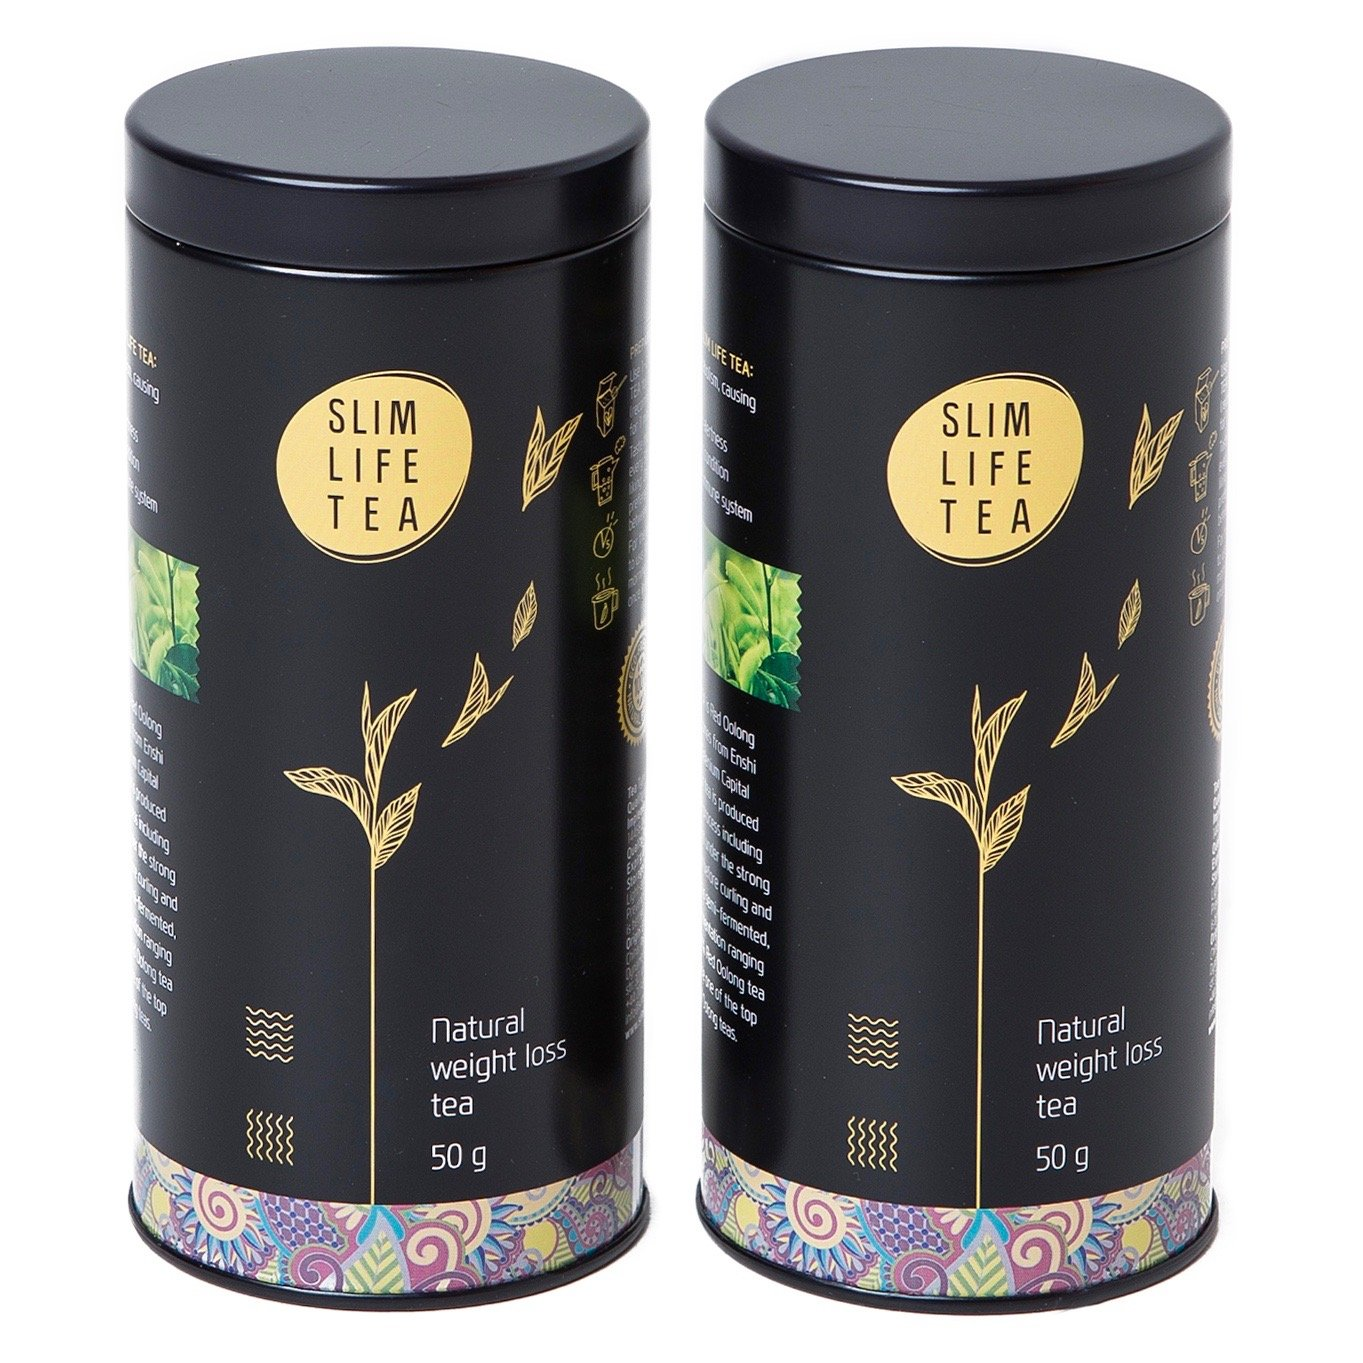 Slim Life Tea 1 Month Package (Includes 2 Tins of Tea). Burns Fat, Non-Laxative, Tasty